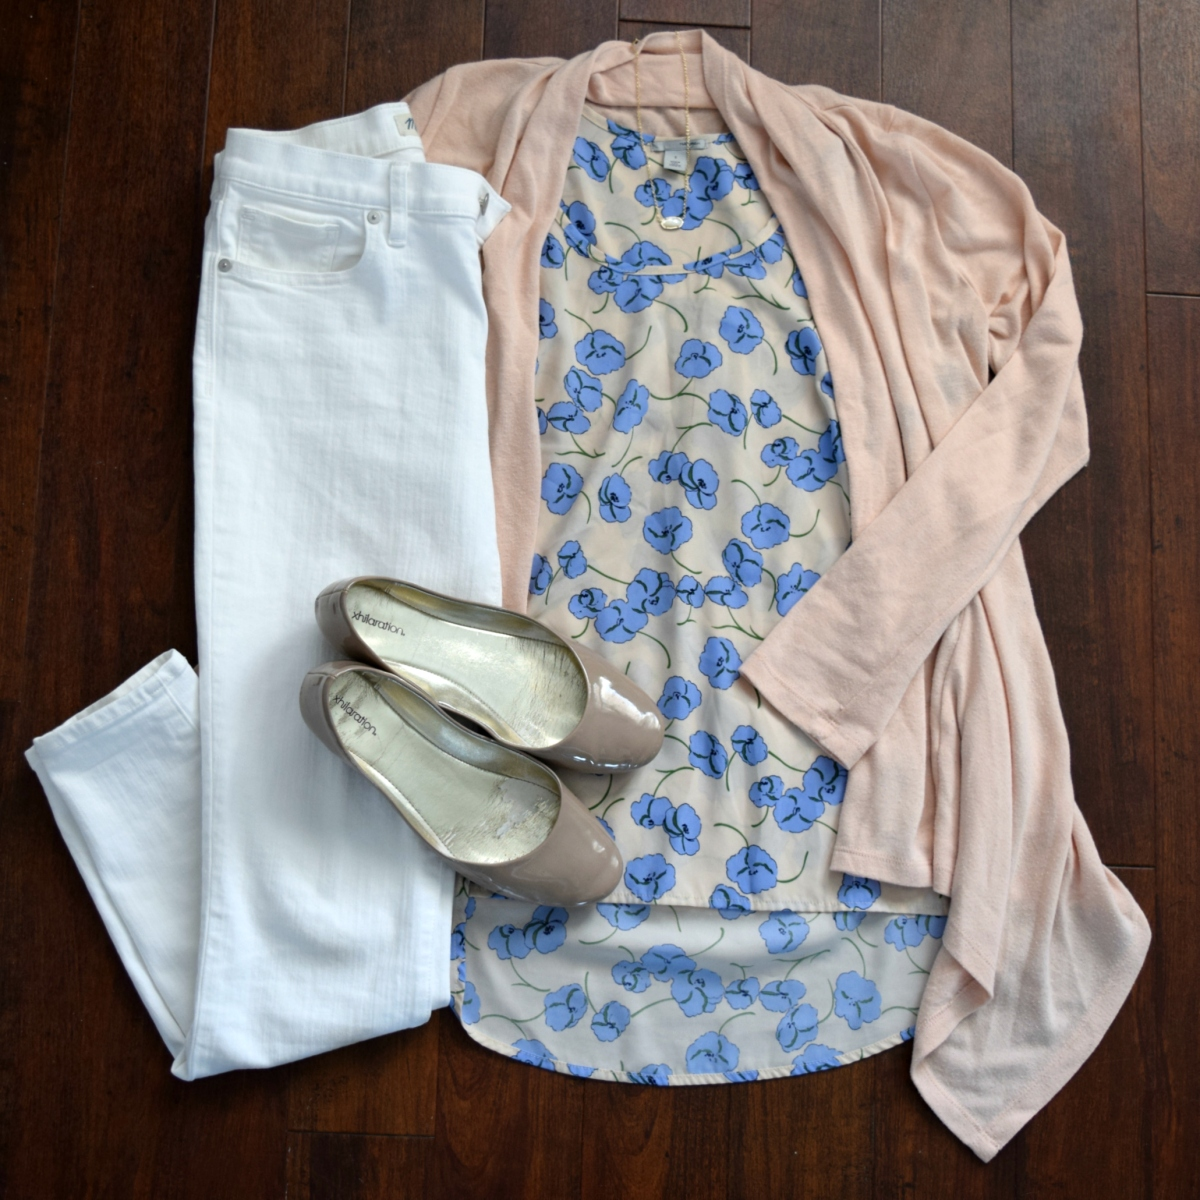 floral blouse. pink cardi, white skinny jeans, and nude flats |www.pearlsandsportsbras.com|